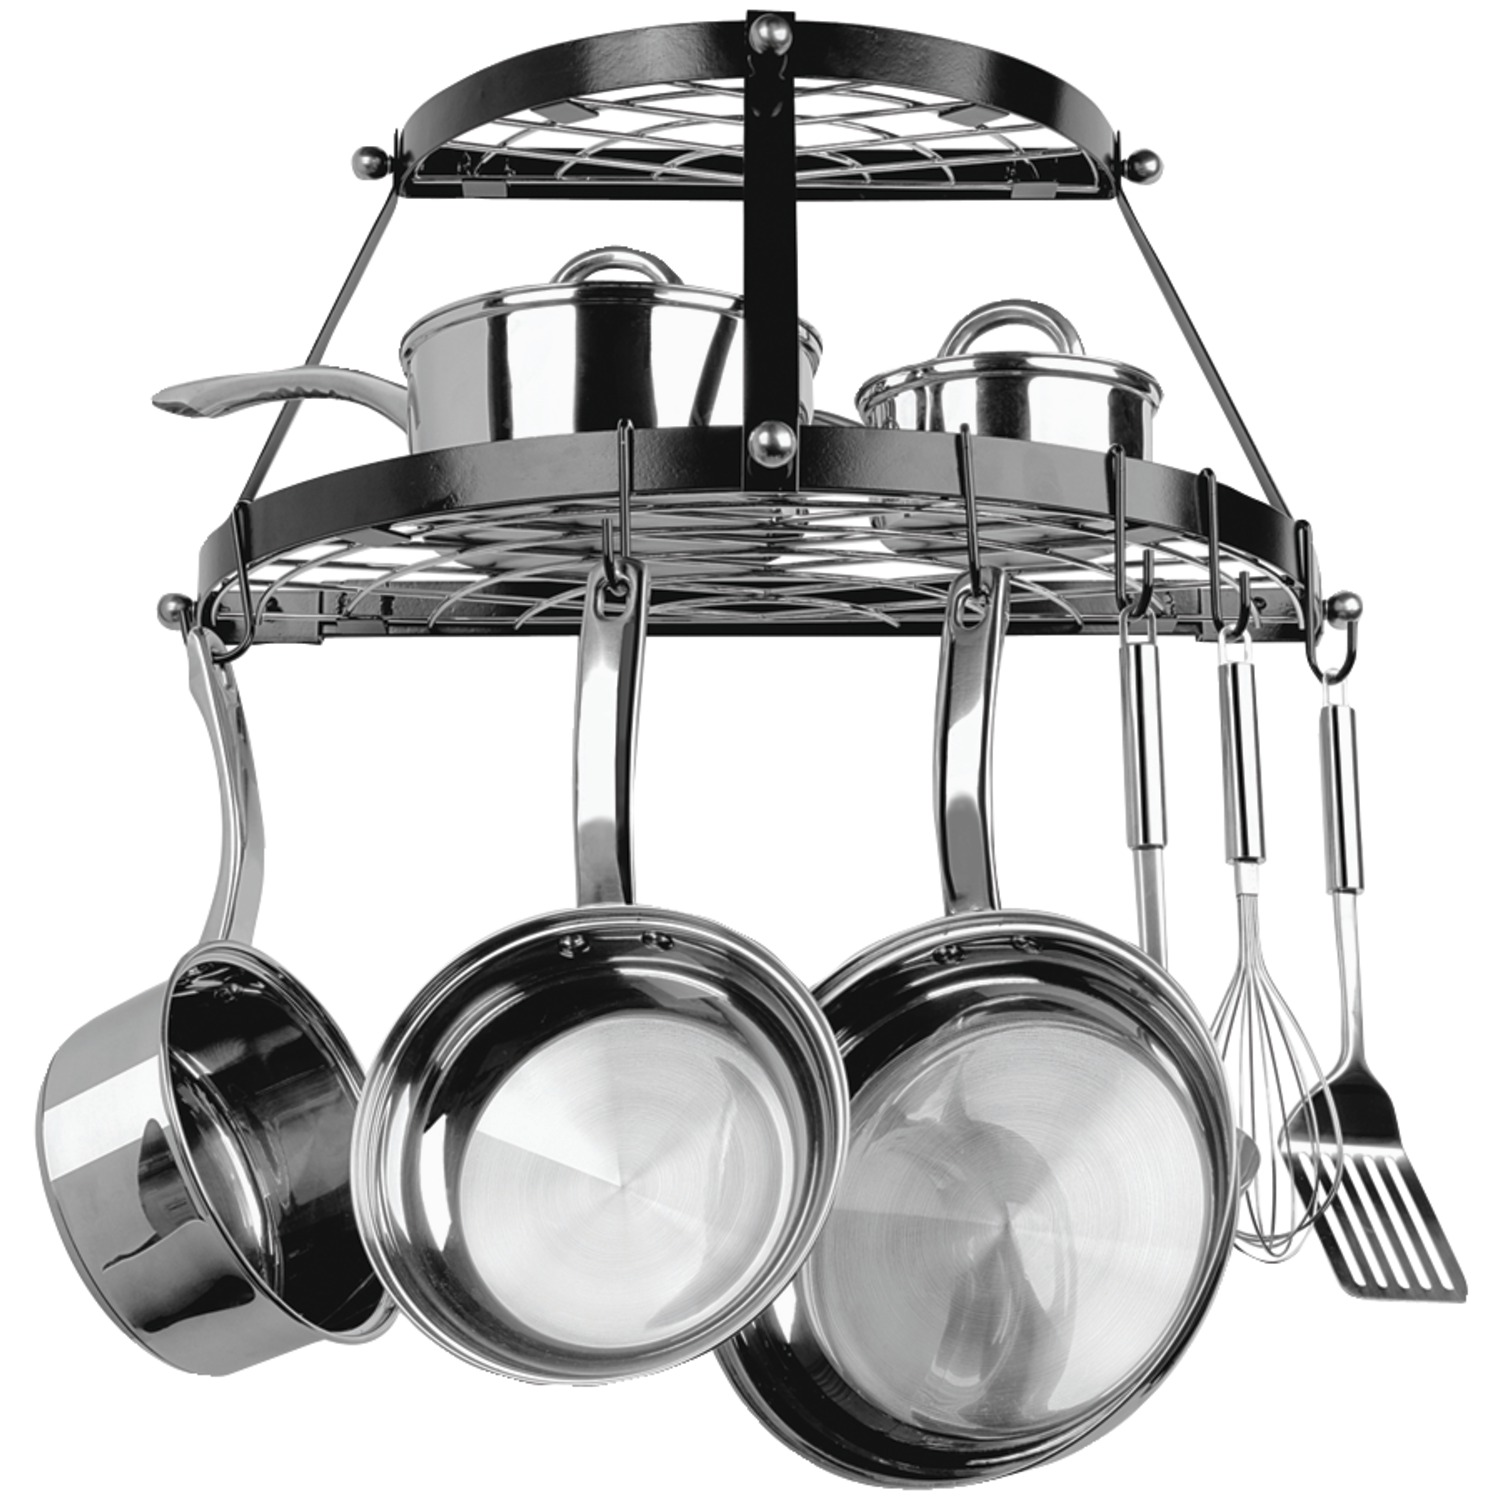 Range Kleen CW6002R Double-shelf Wall-mount Pot Rack (black)